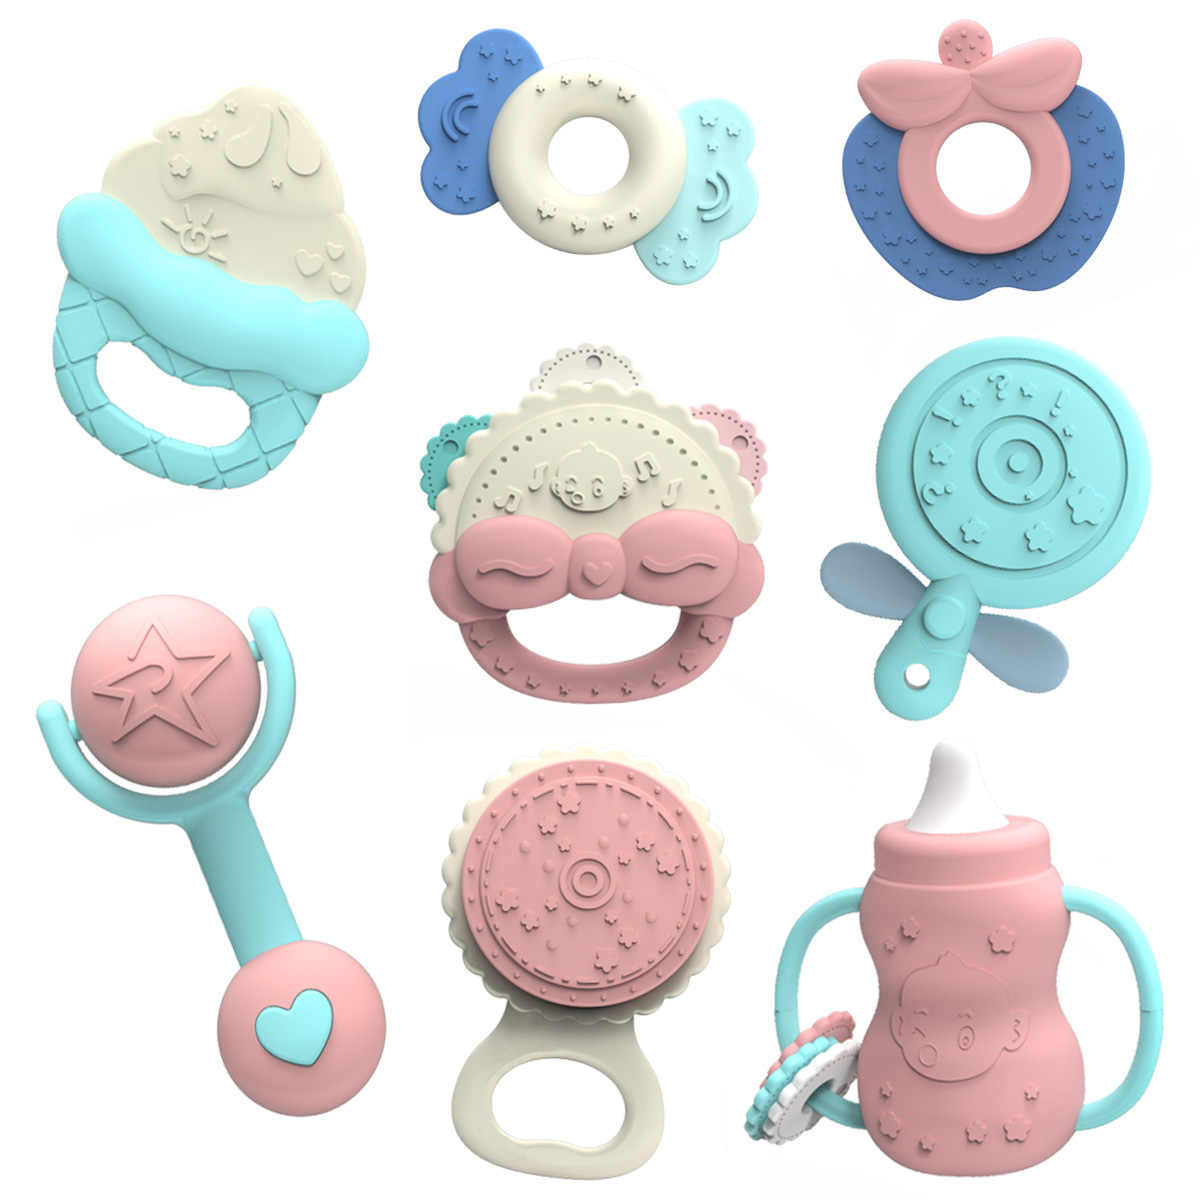 Baby Teether Rattle Toys on Mobile Cot for Child 0-12 13-24 Months Kids Educational Bed Bell Newborn Pacifier Stroller Weep Toy